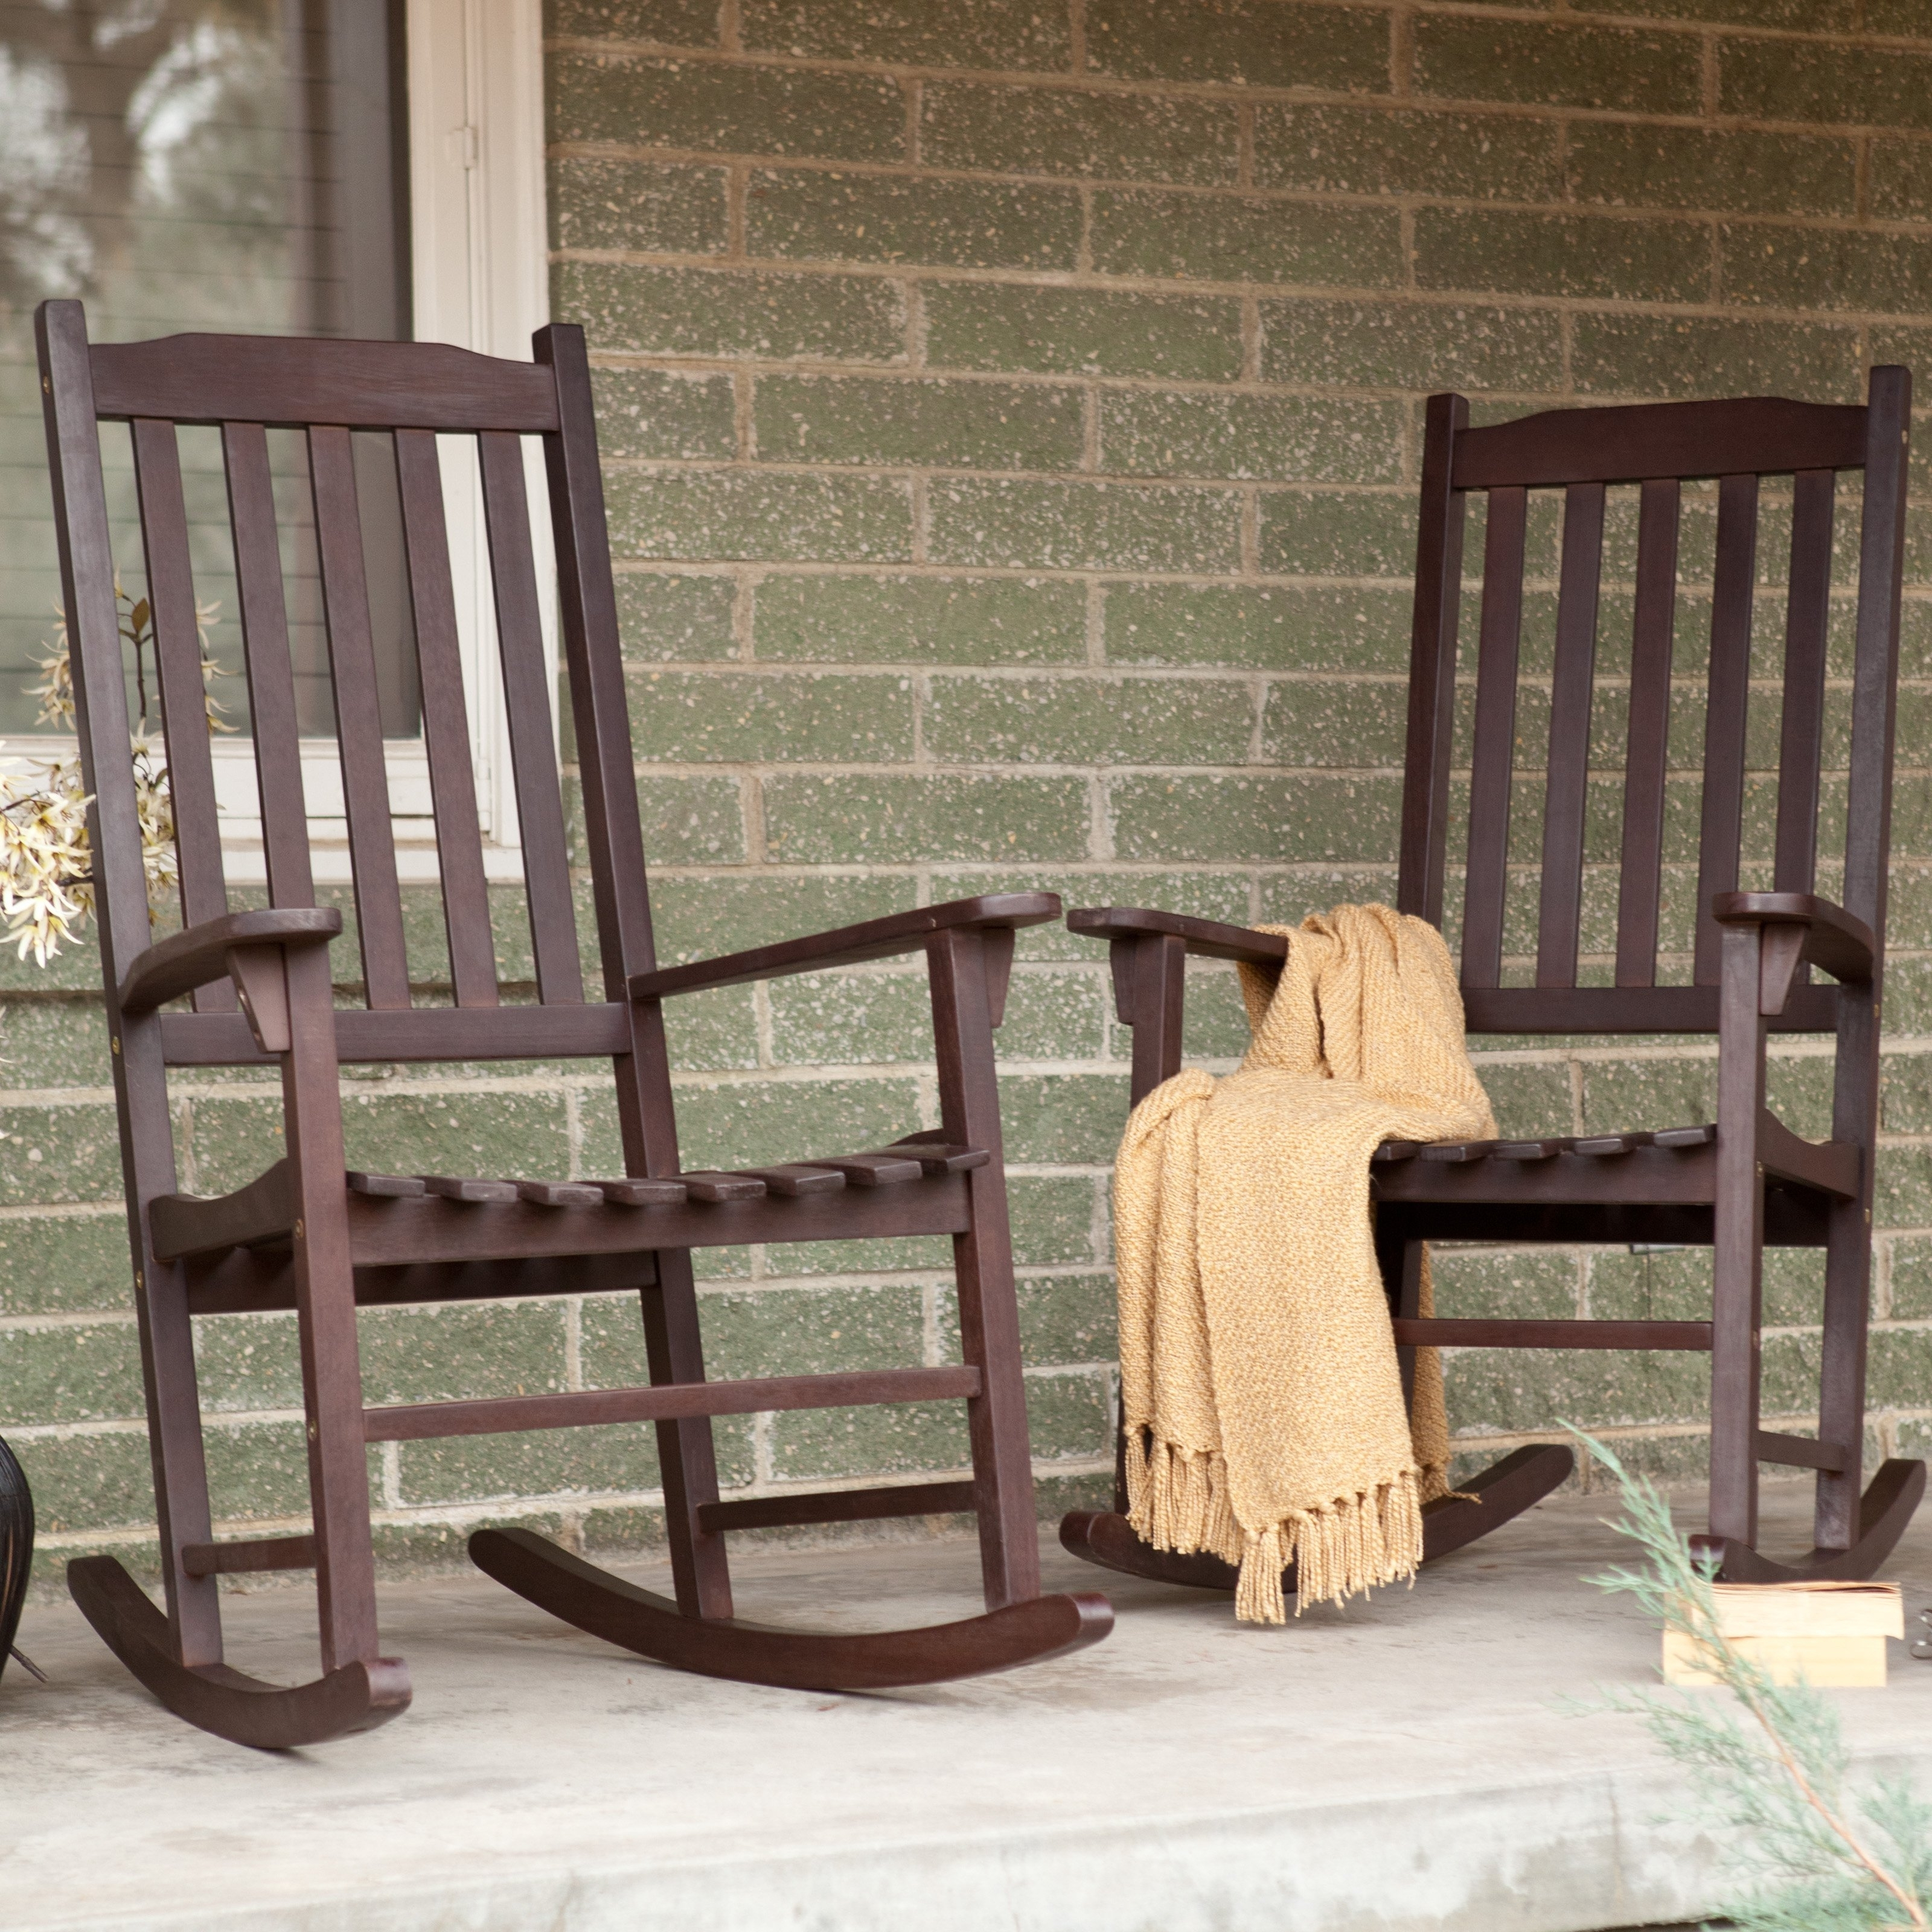 Trendy Rocking Chairs For Porch Intended For How To Choose Comfortable Outdoor Rocking Chairs – Yonohomedesign (View 4 of 20)